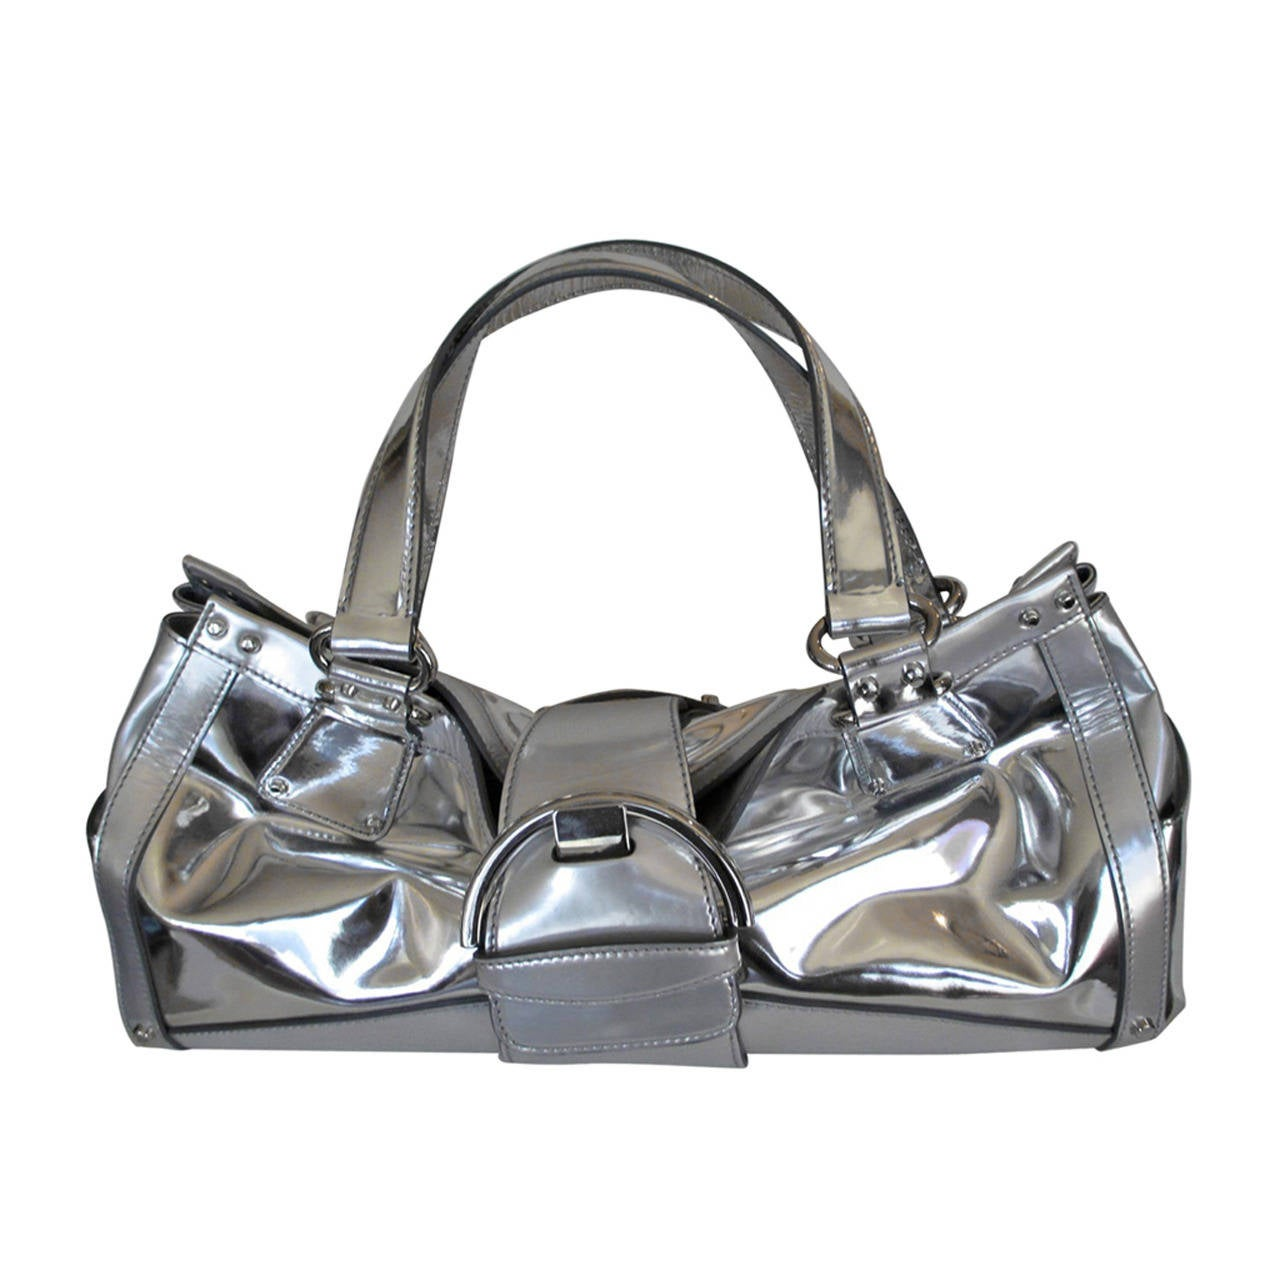 Sergio Rossi silver Leather handbag